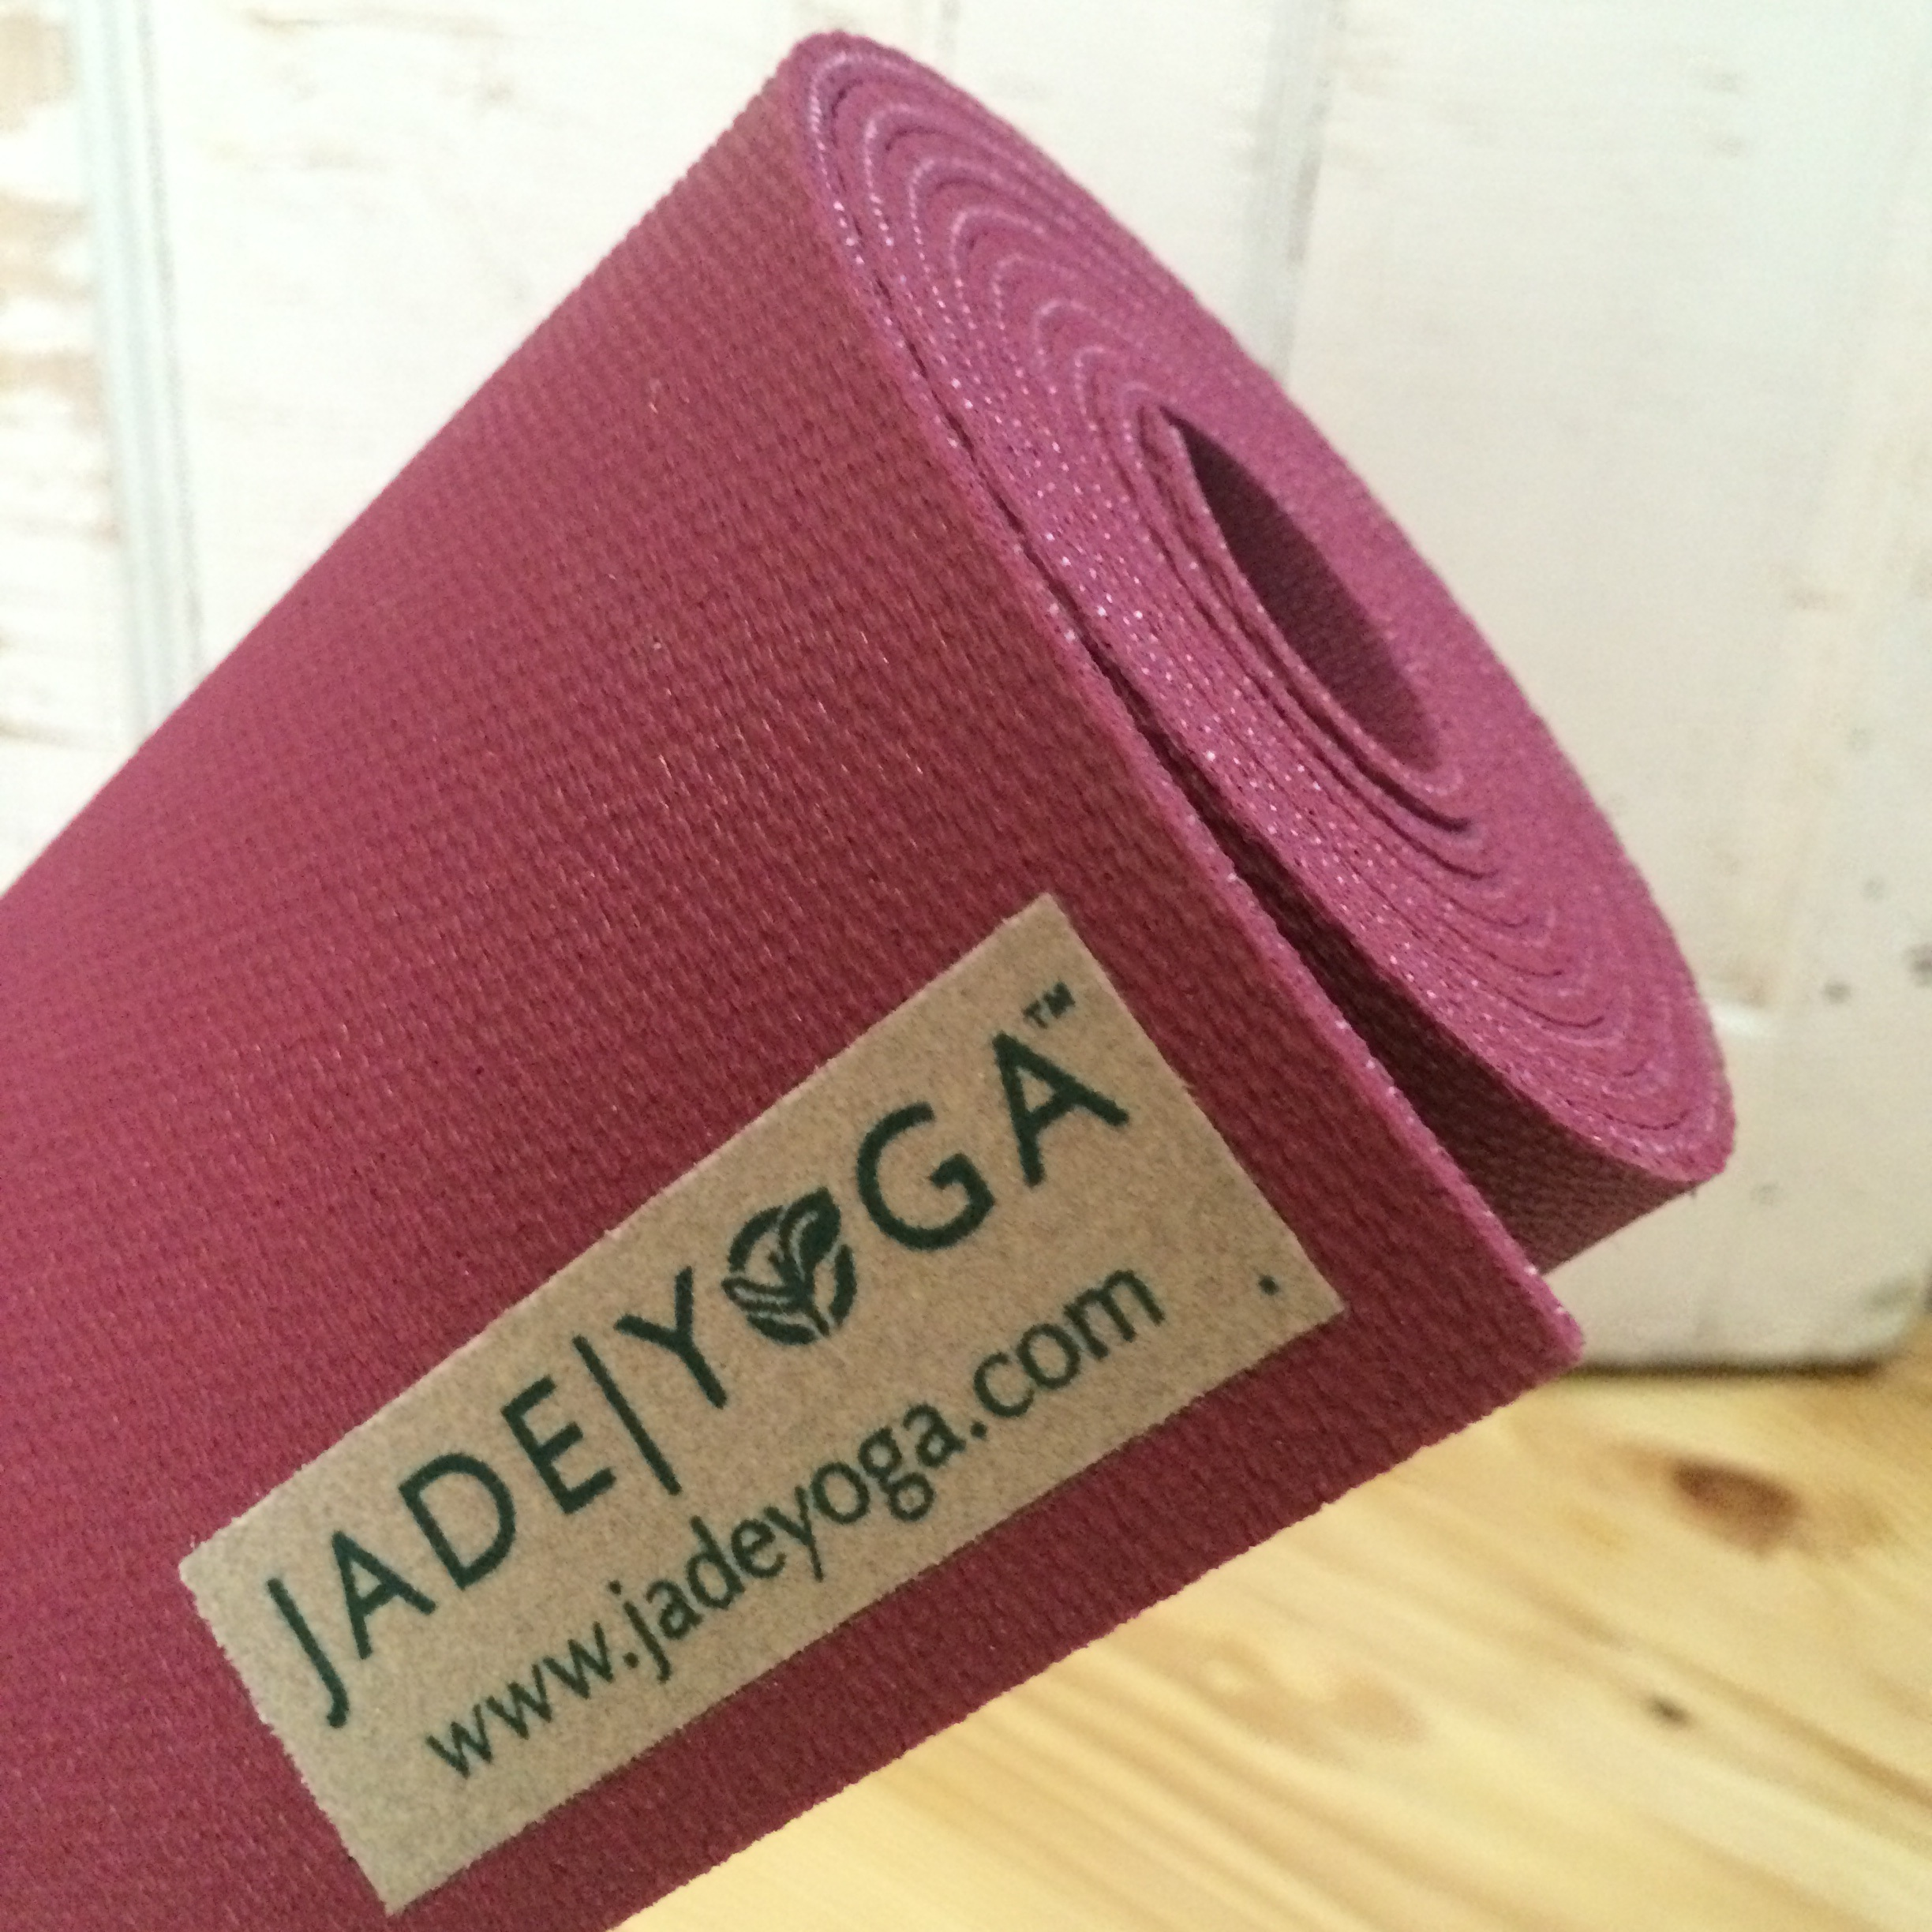 mats banner collection outlet products mat plum goyoga yoga jade harmony